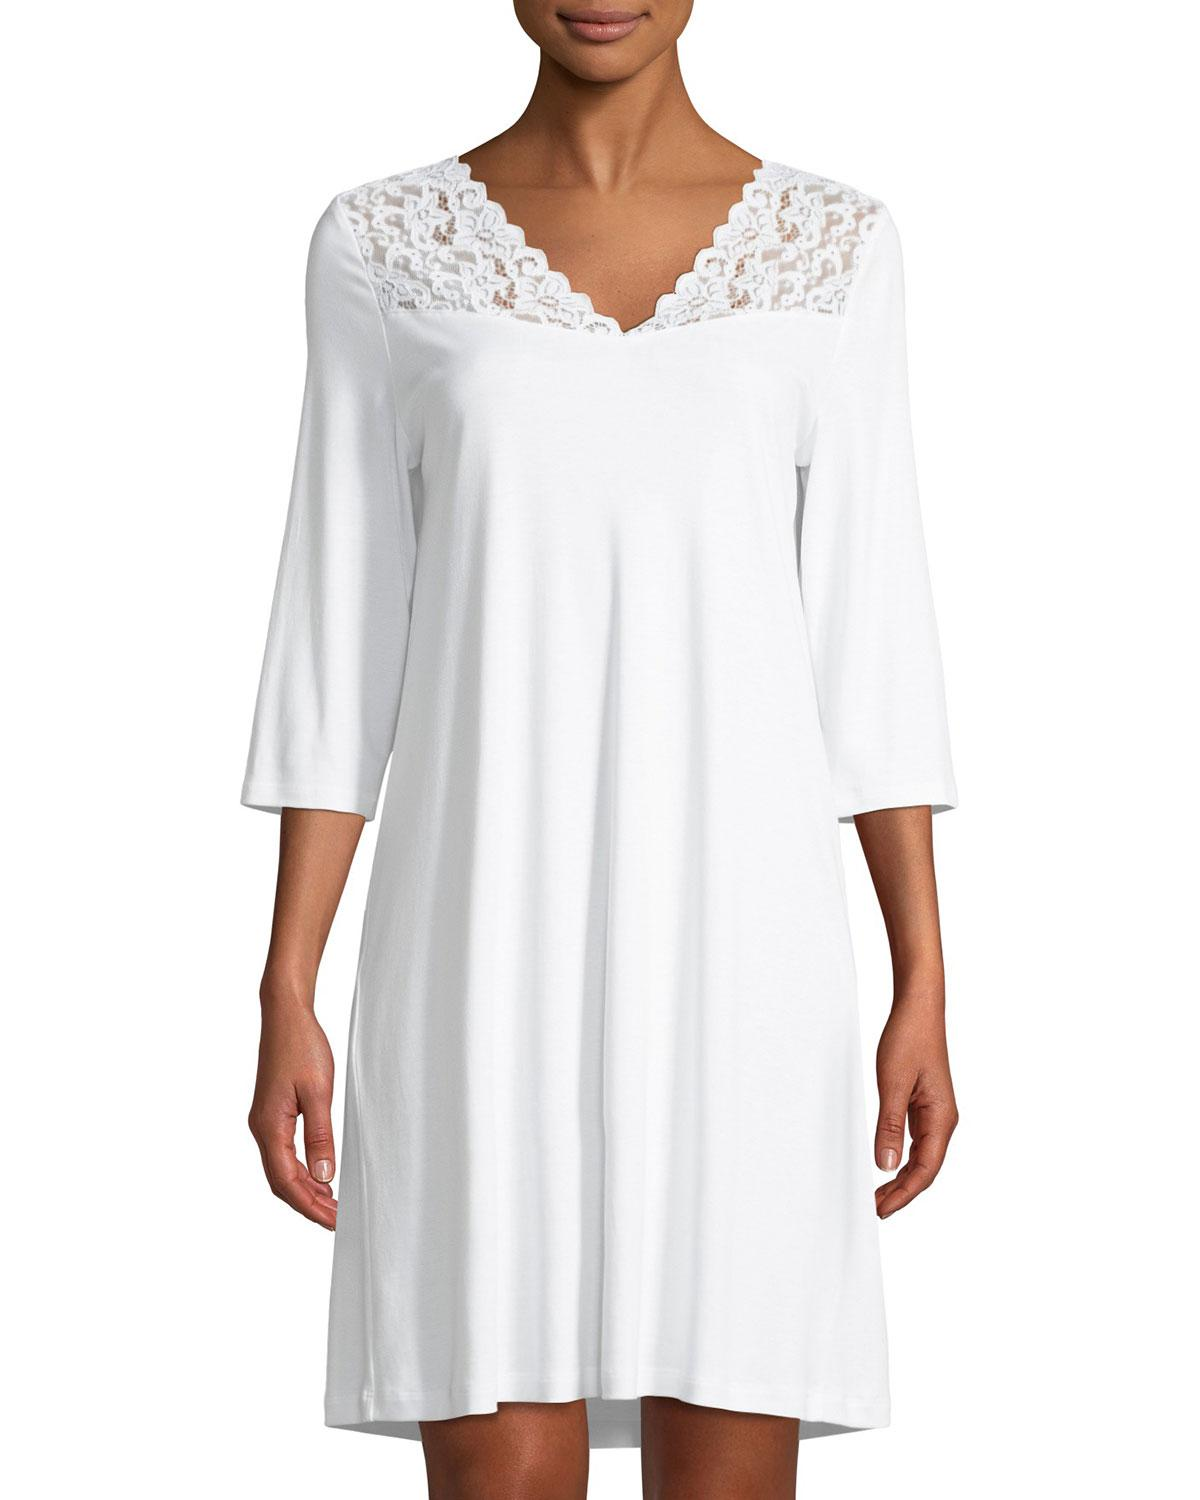 4fa54e930c Lyst - Hanro Moments 3 4 Sleeve Nightgown in White